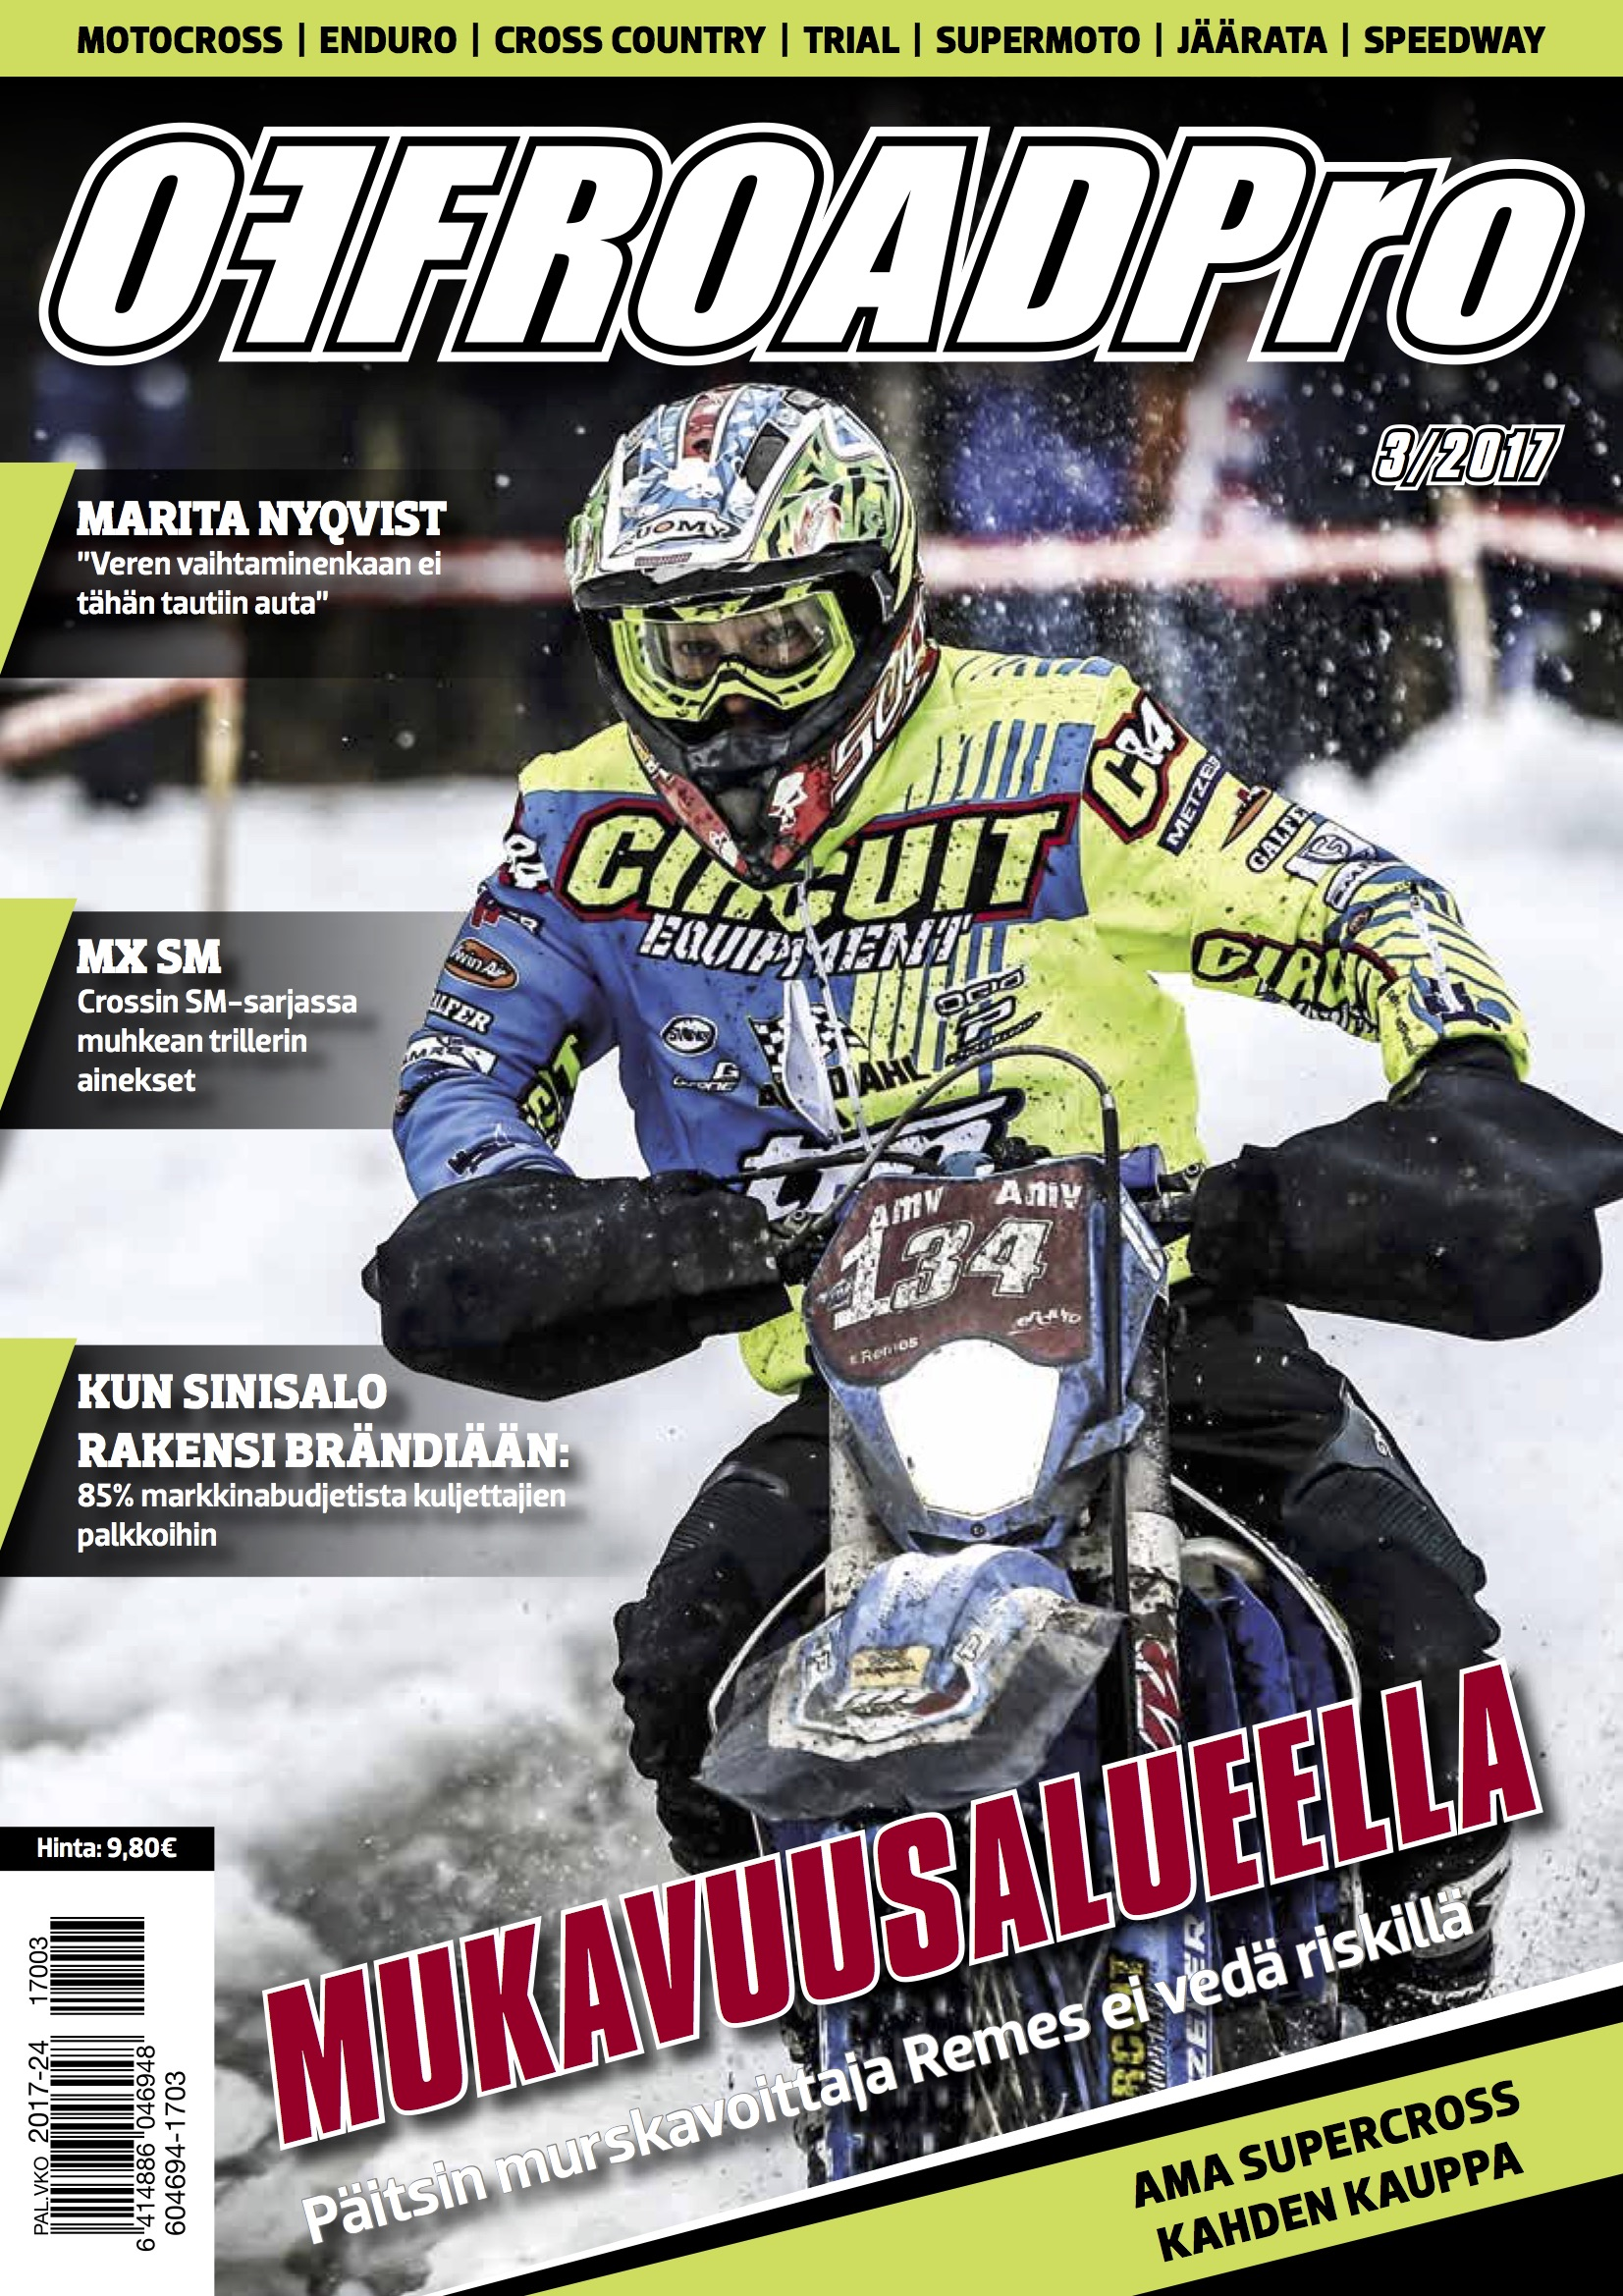 The March 17 Cover